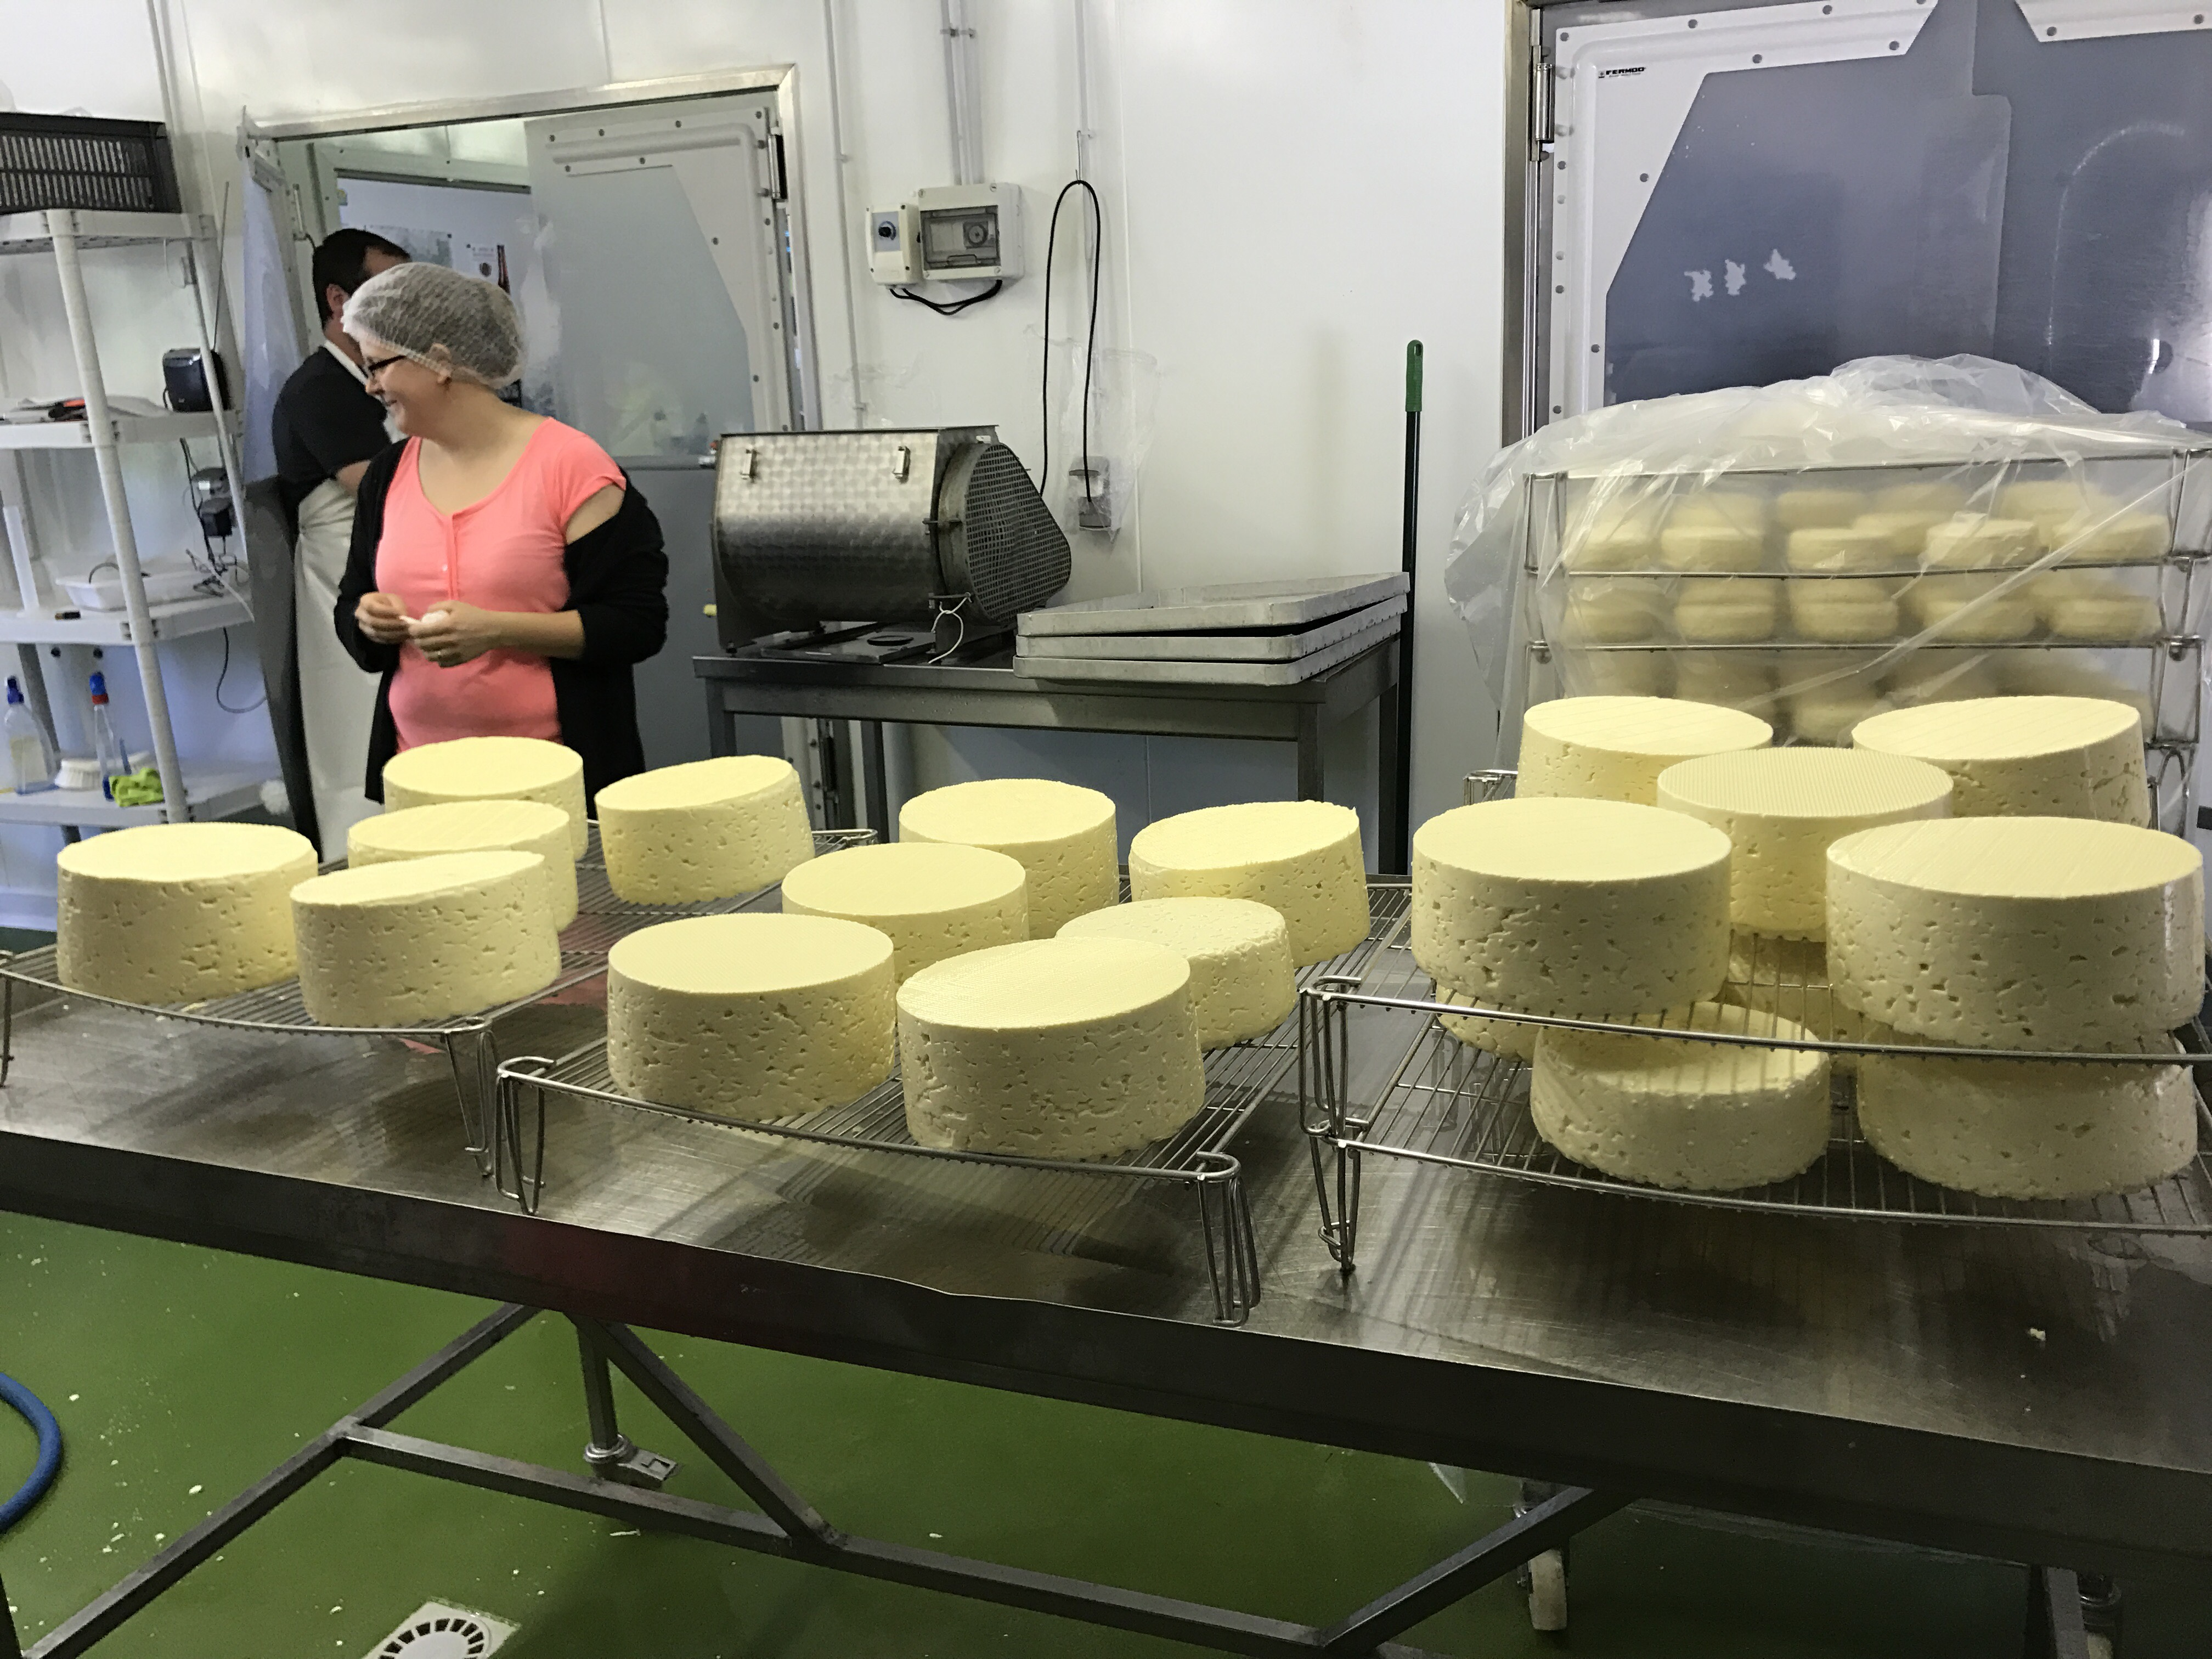 Fromagerie, France